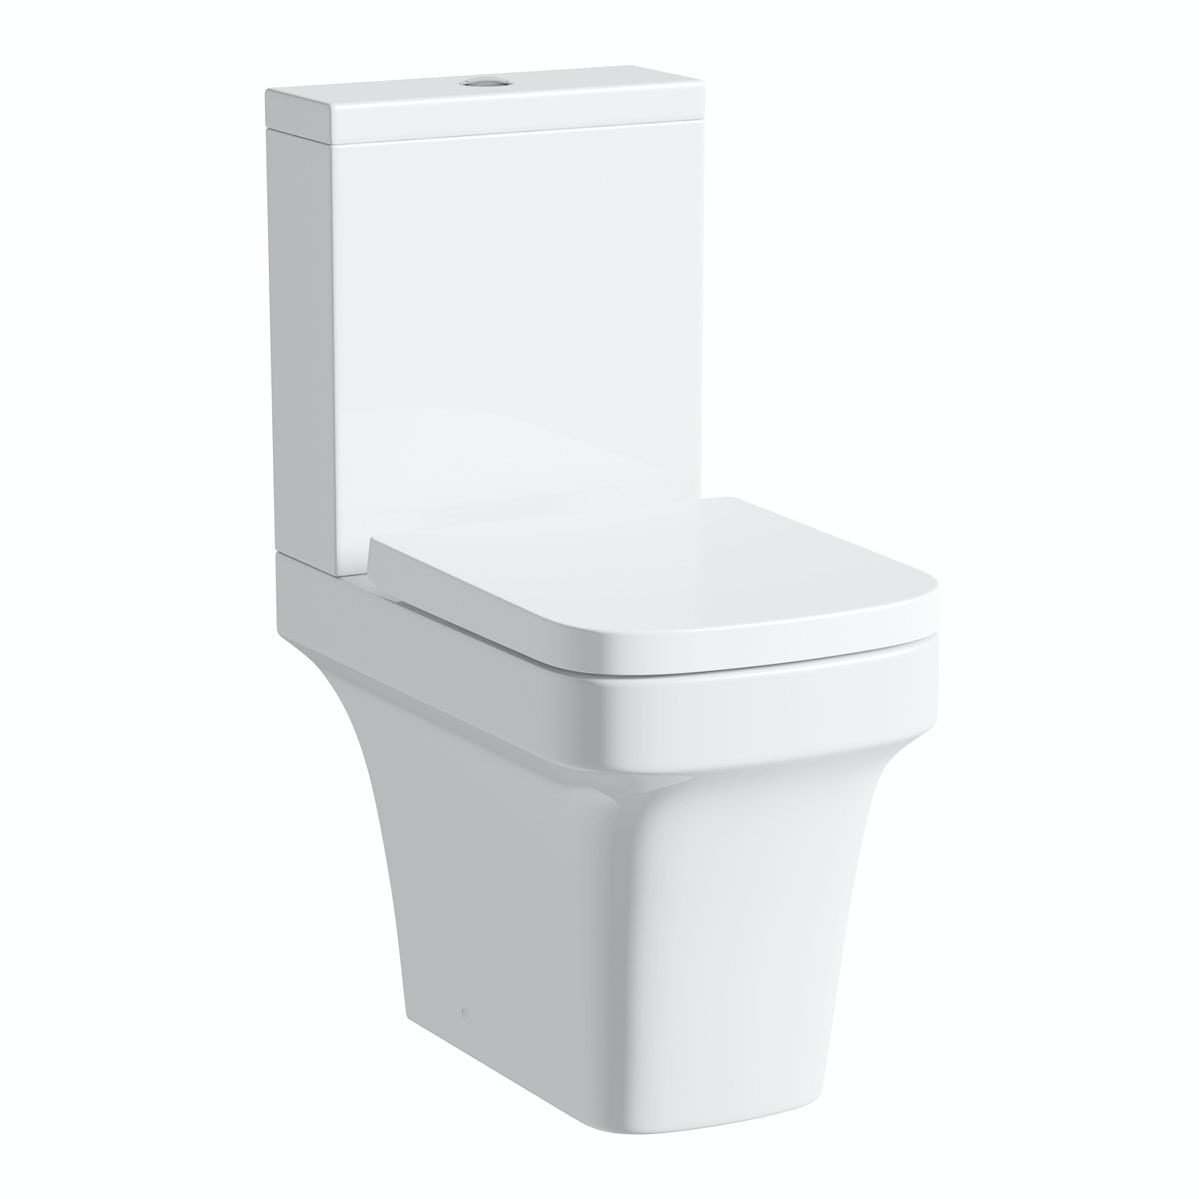 Mode Carter close coupled toilet inc soft close seat with pan connector